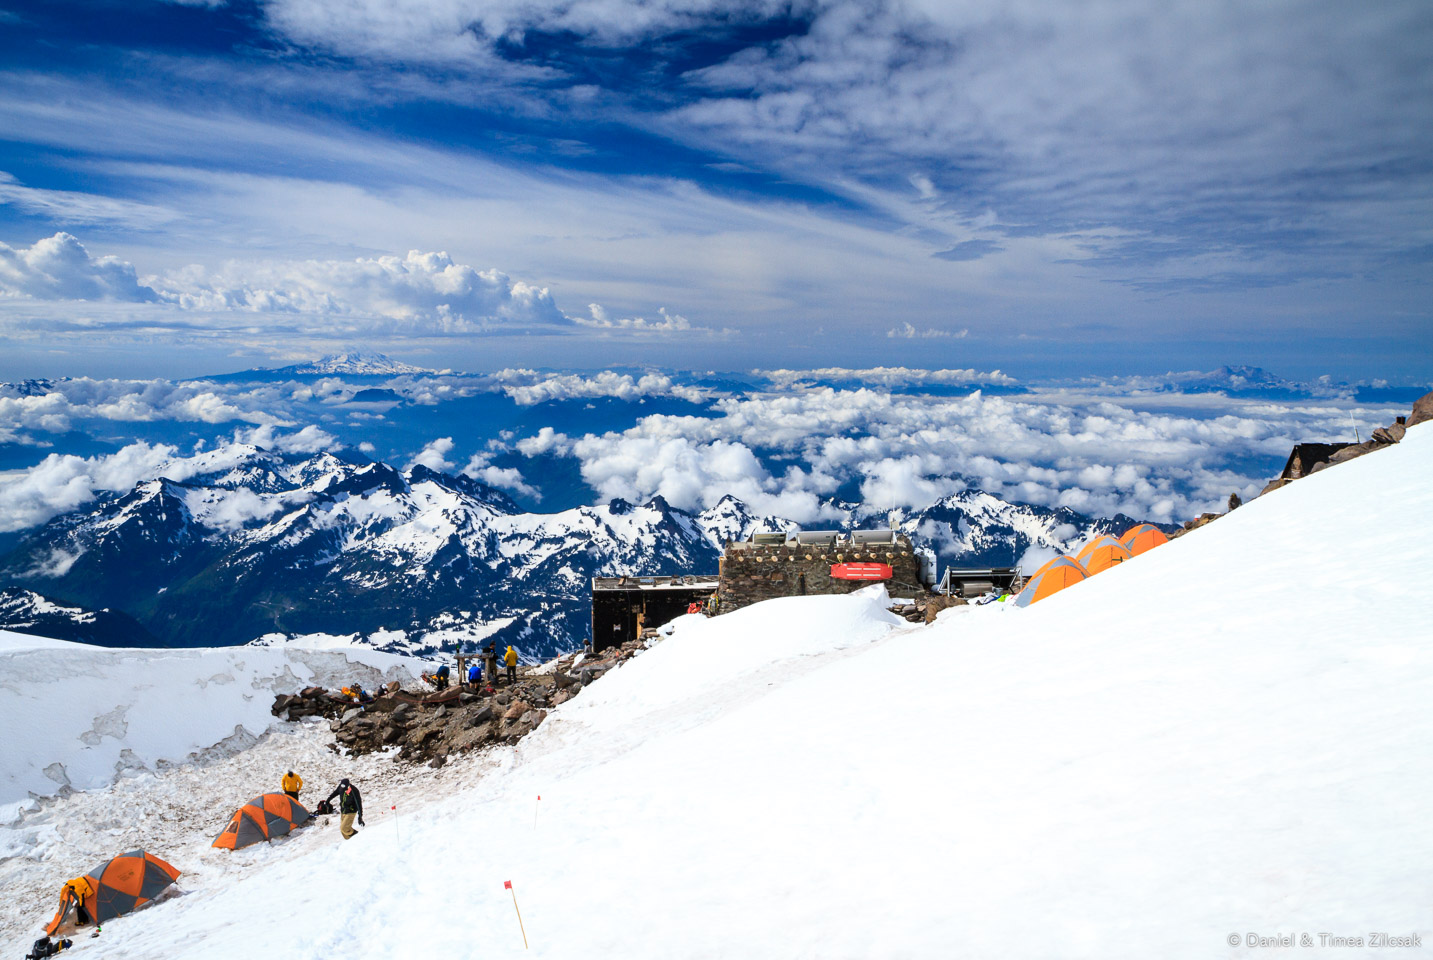 View from Camp Muir: the main shelter/hut and climbers' tents with Mount Adams right below the clouds